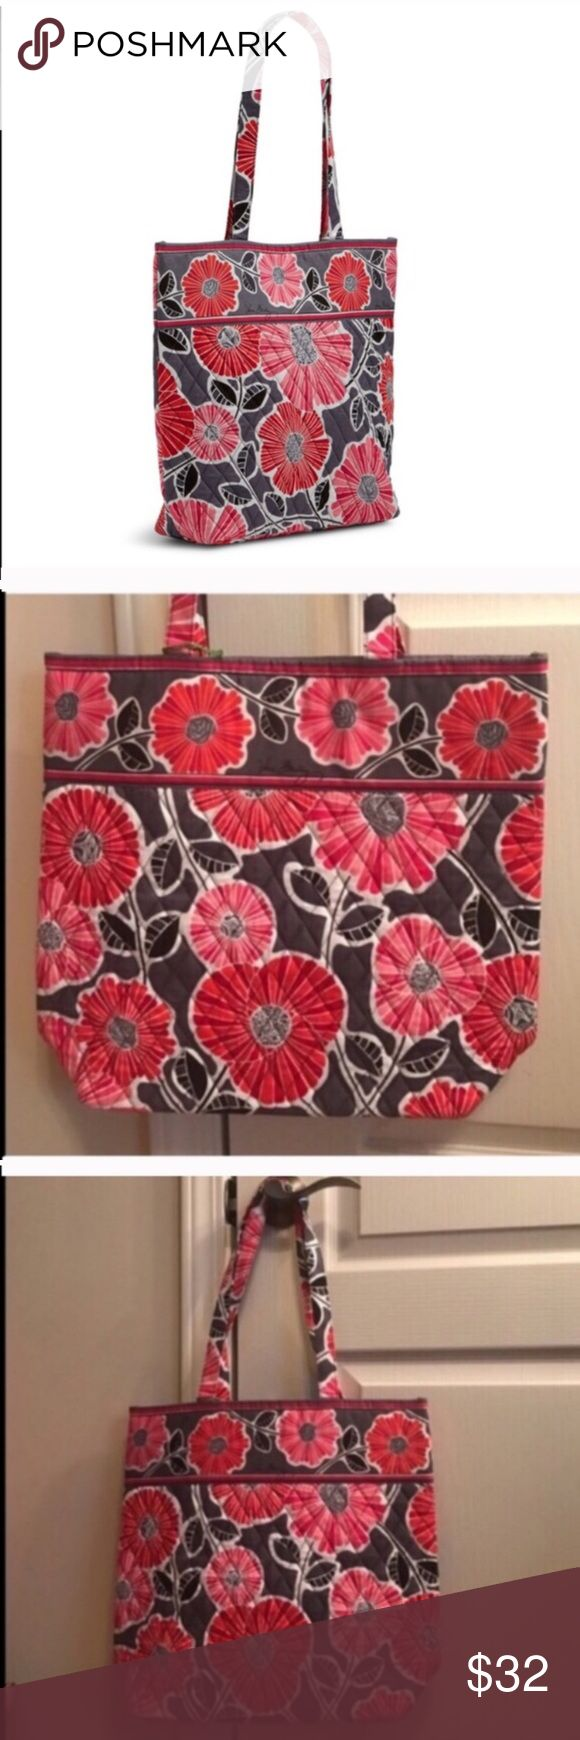 NWT Vera Bradley tote bag in cheery blossoms NWT Vera Bradley tote bag in cheery blossoms Vera Bradley Bags Totes